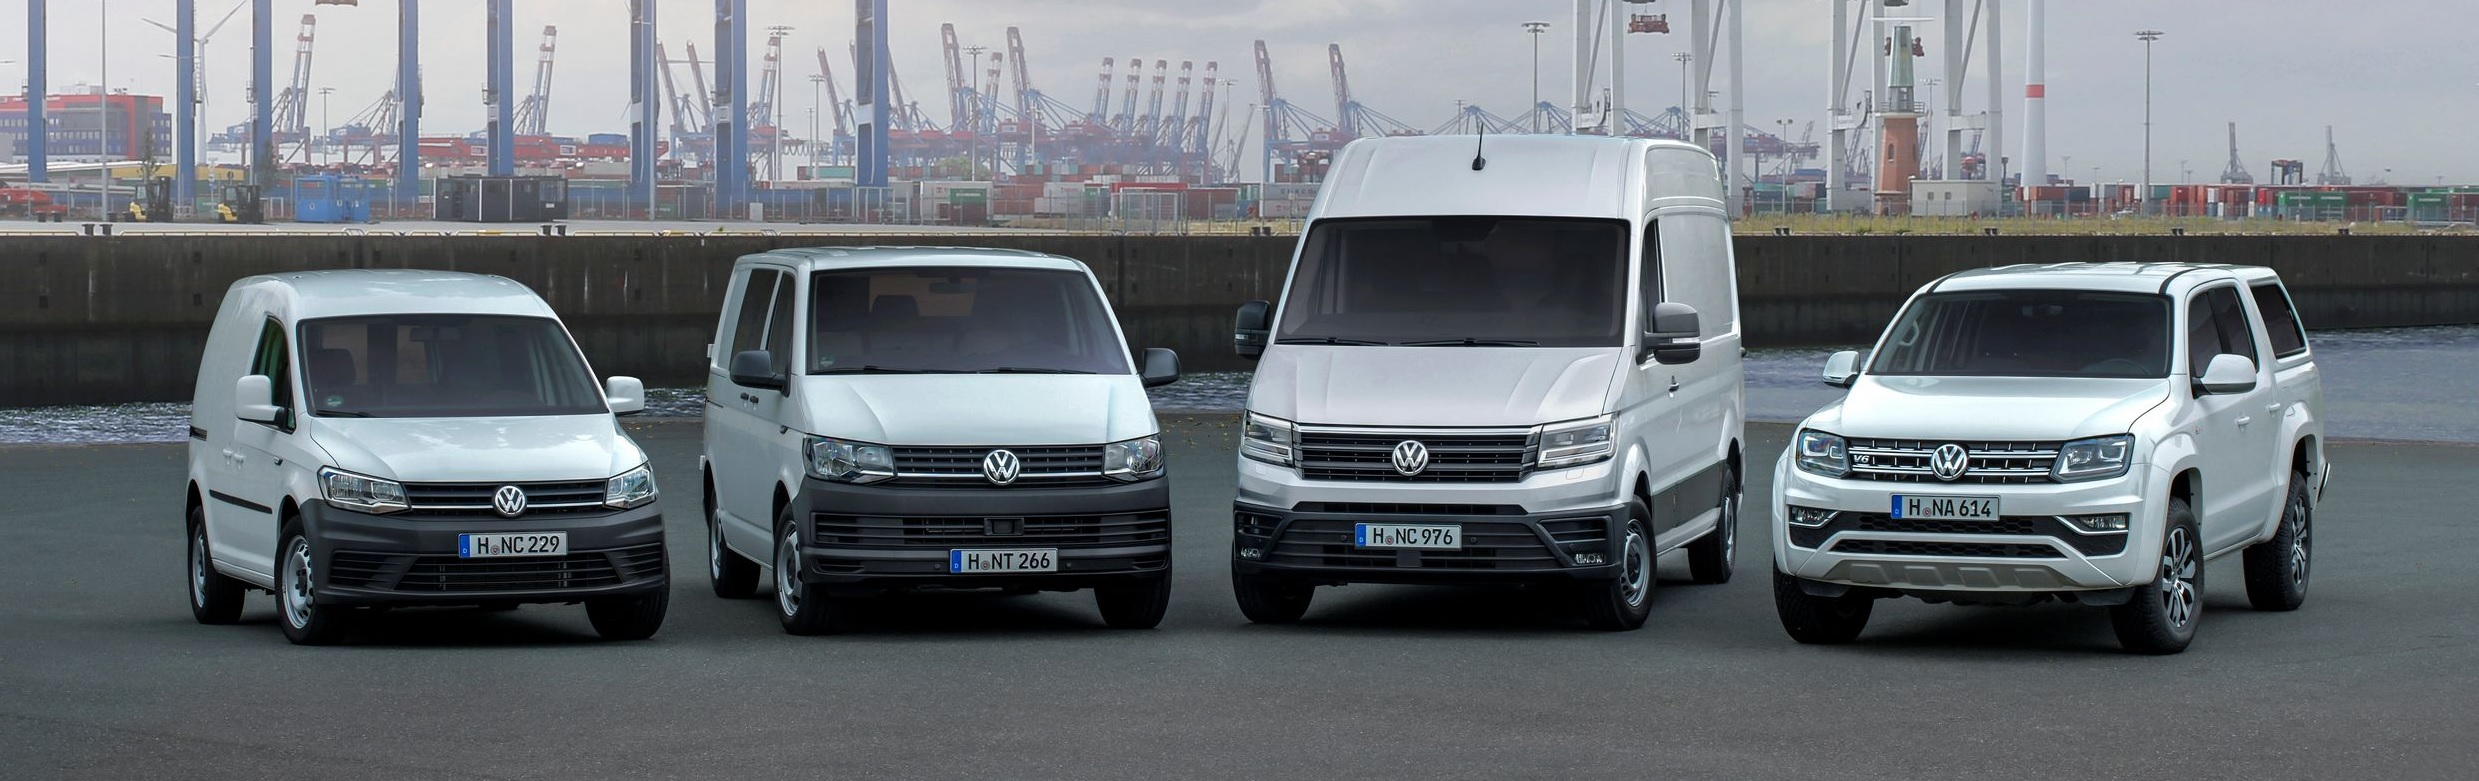 Volkswagen Commercial Vehicle Range